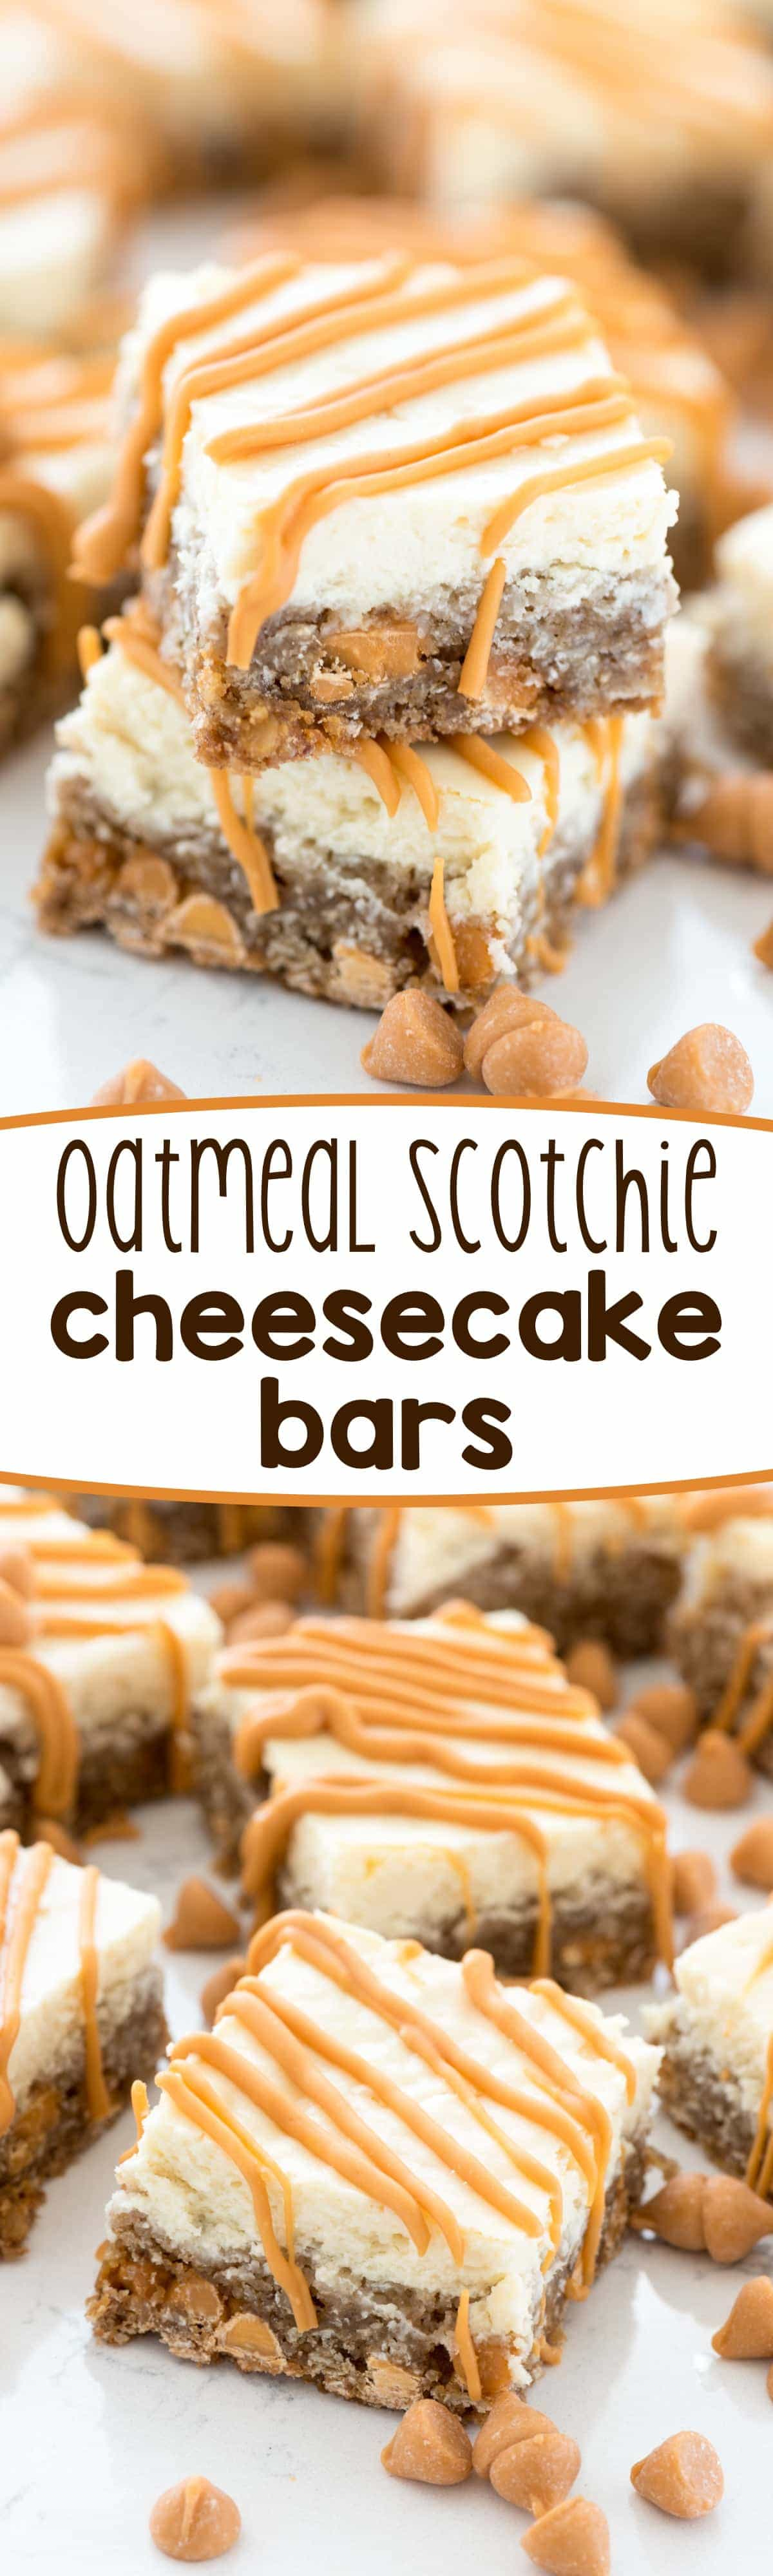 Oatmeal Scotchie Cheesecake Bars - this easy recipe combines oatmeal scotchie cookie bars with creamy cheesecake!